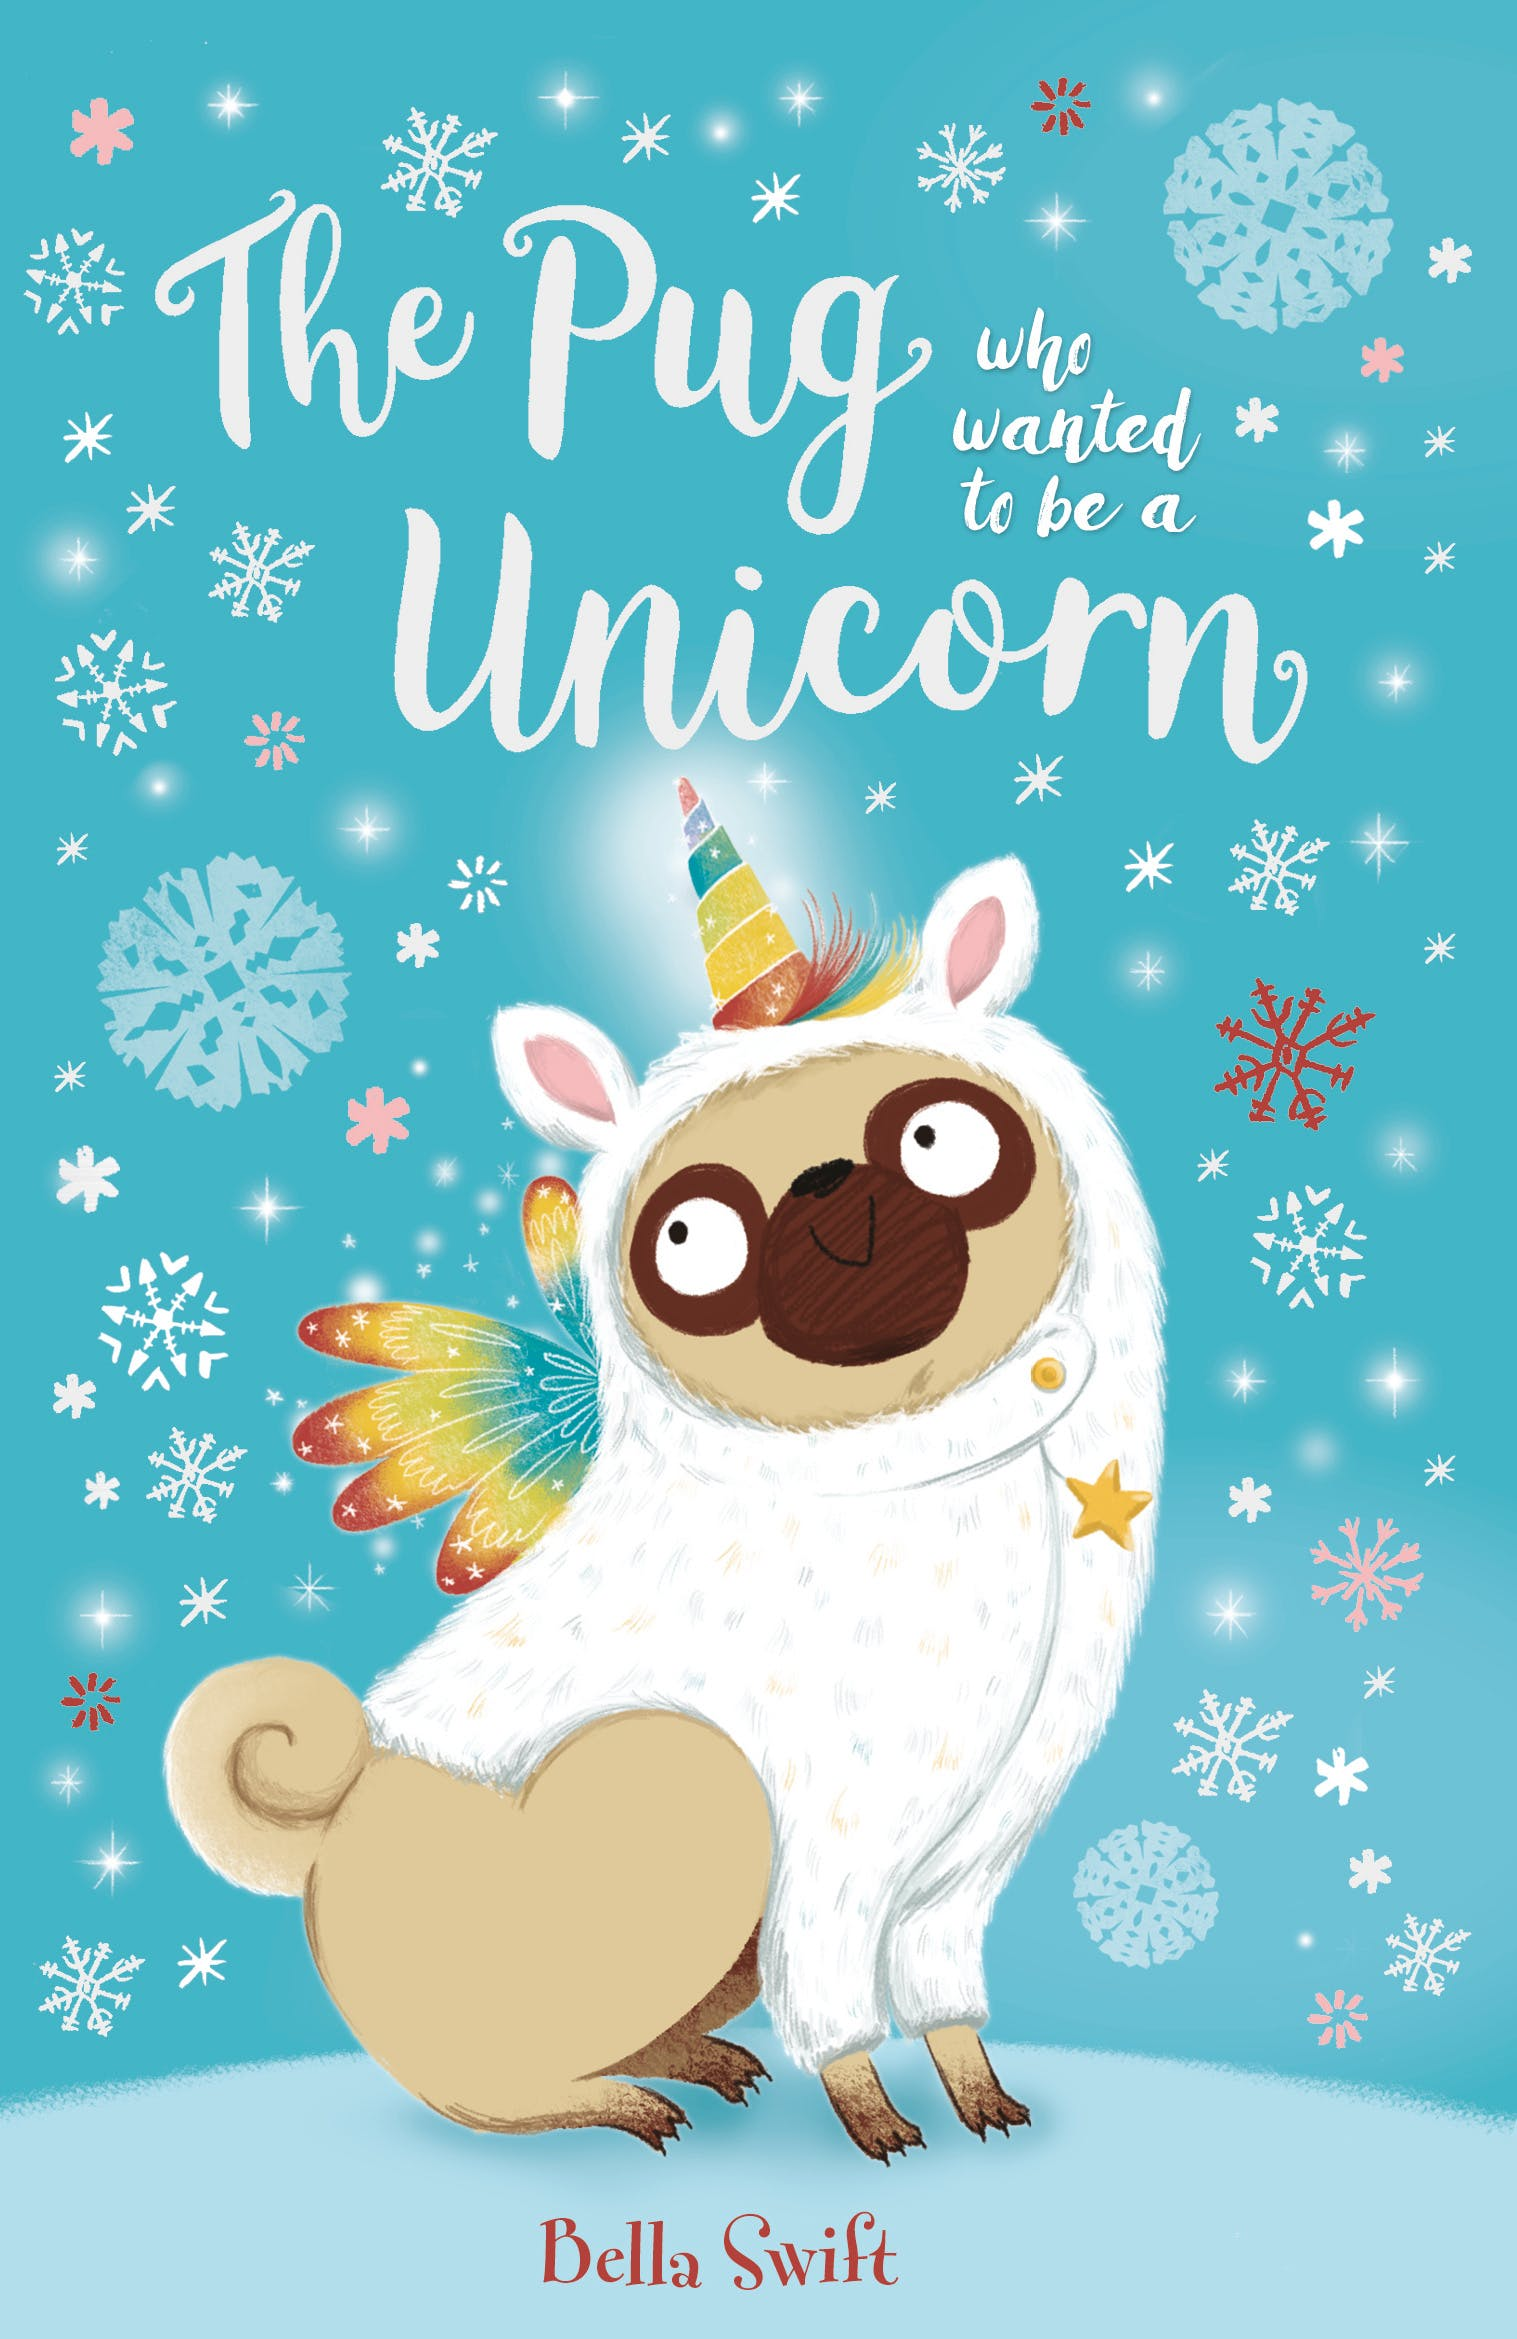 Hachette clipart jpg black and white download The Pug Who Wanted to Be a Unicorn by Bella Swift - Books - Hachette ... jpg black and white download